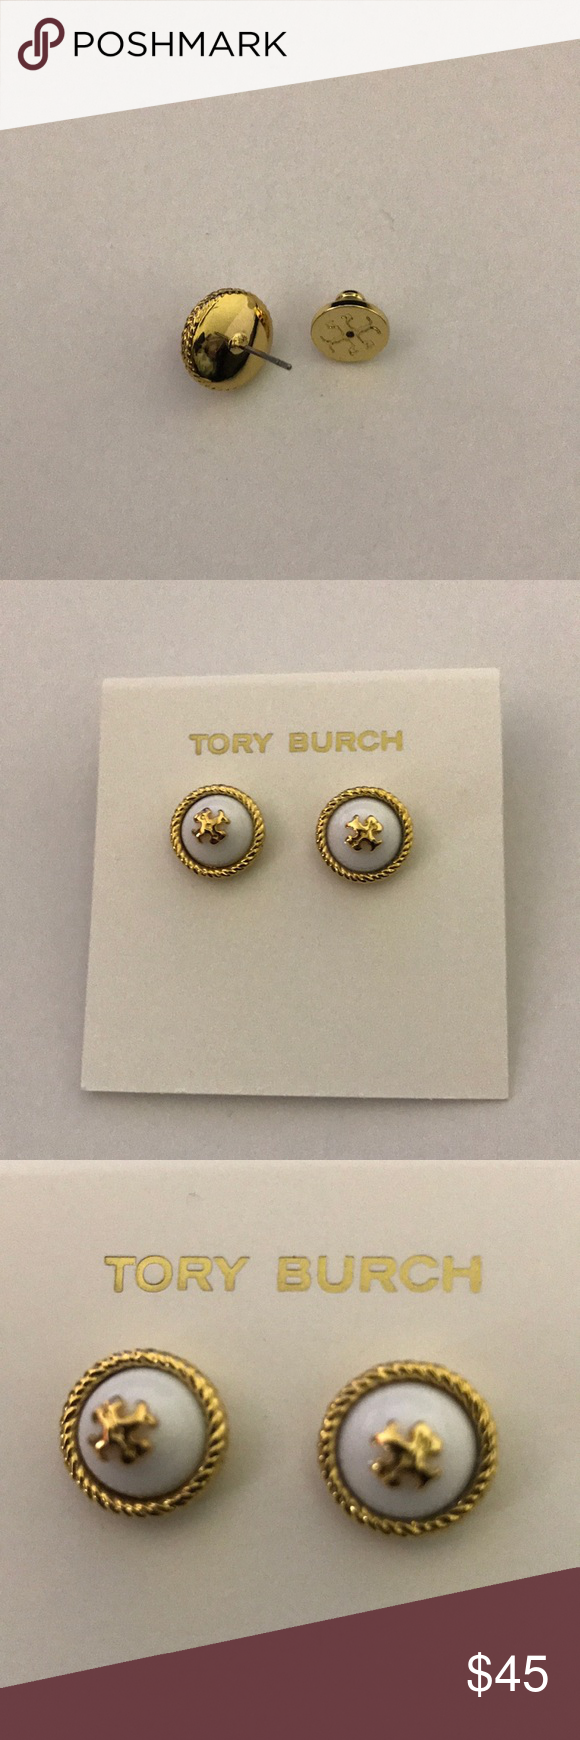 bc7fe5d37e9 New Tory Burch stud earrings The earrings come with the dust bag Tory Burch  Jewelry Earrings